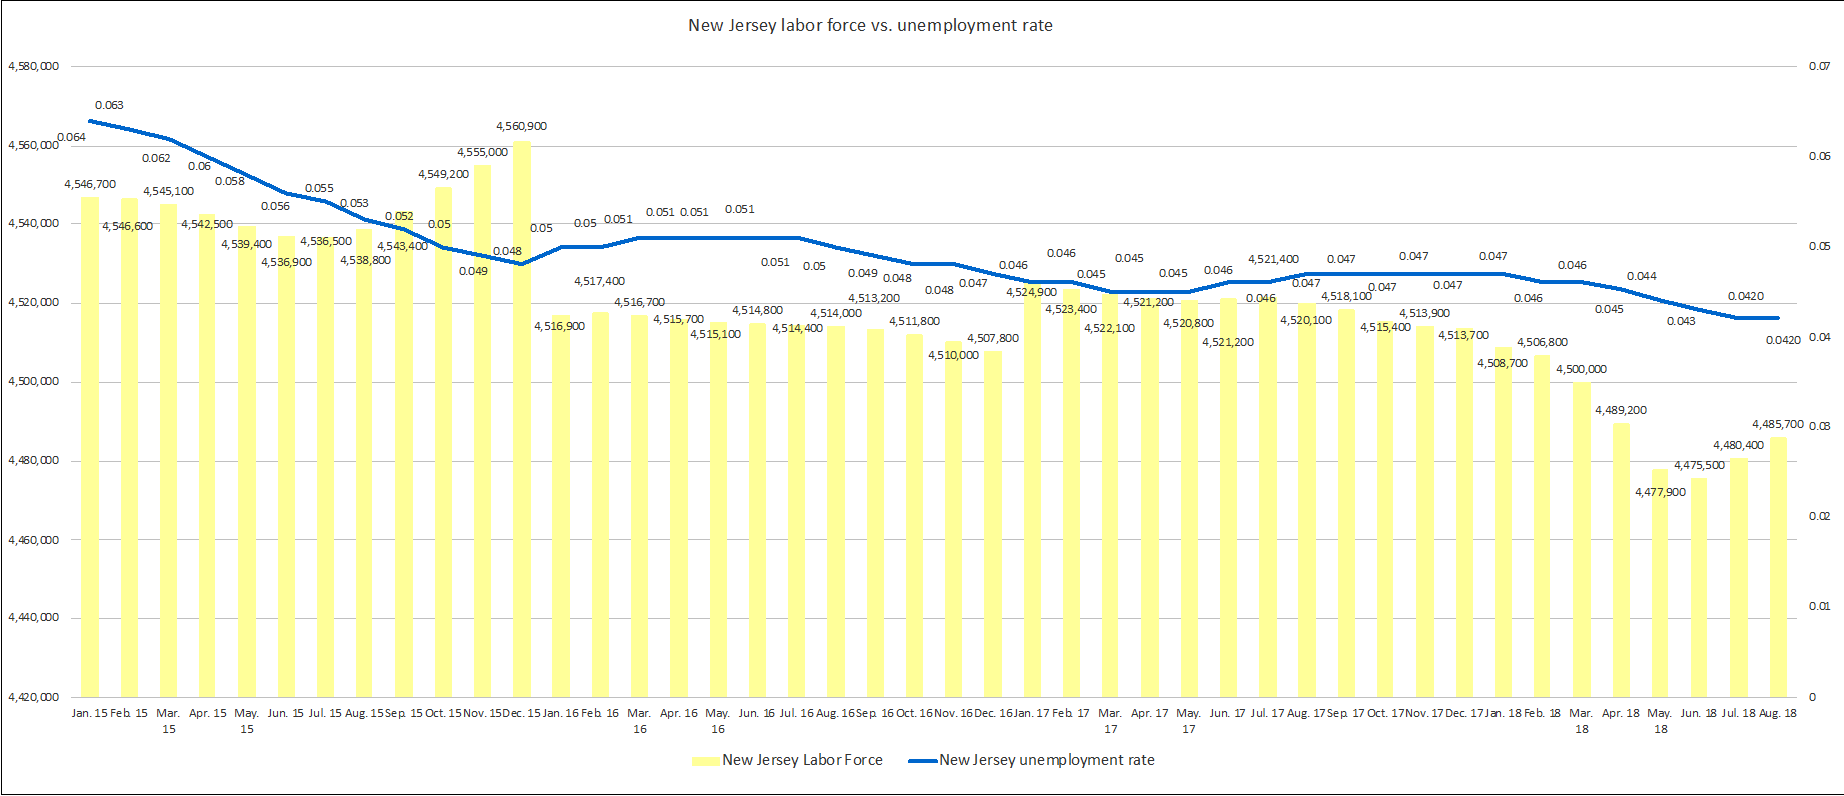 New Jersey's Labor Force vs. Unemployment Rate - 1/15 to 8/18